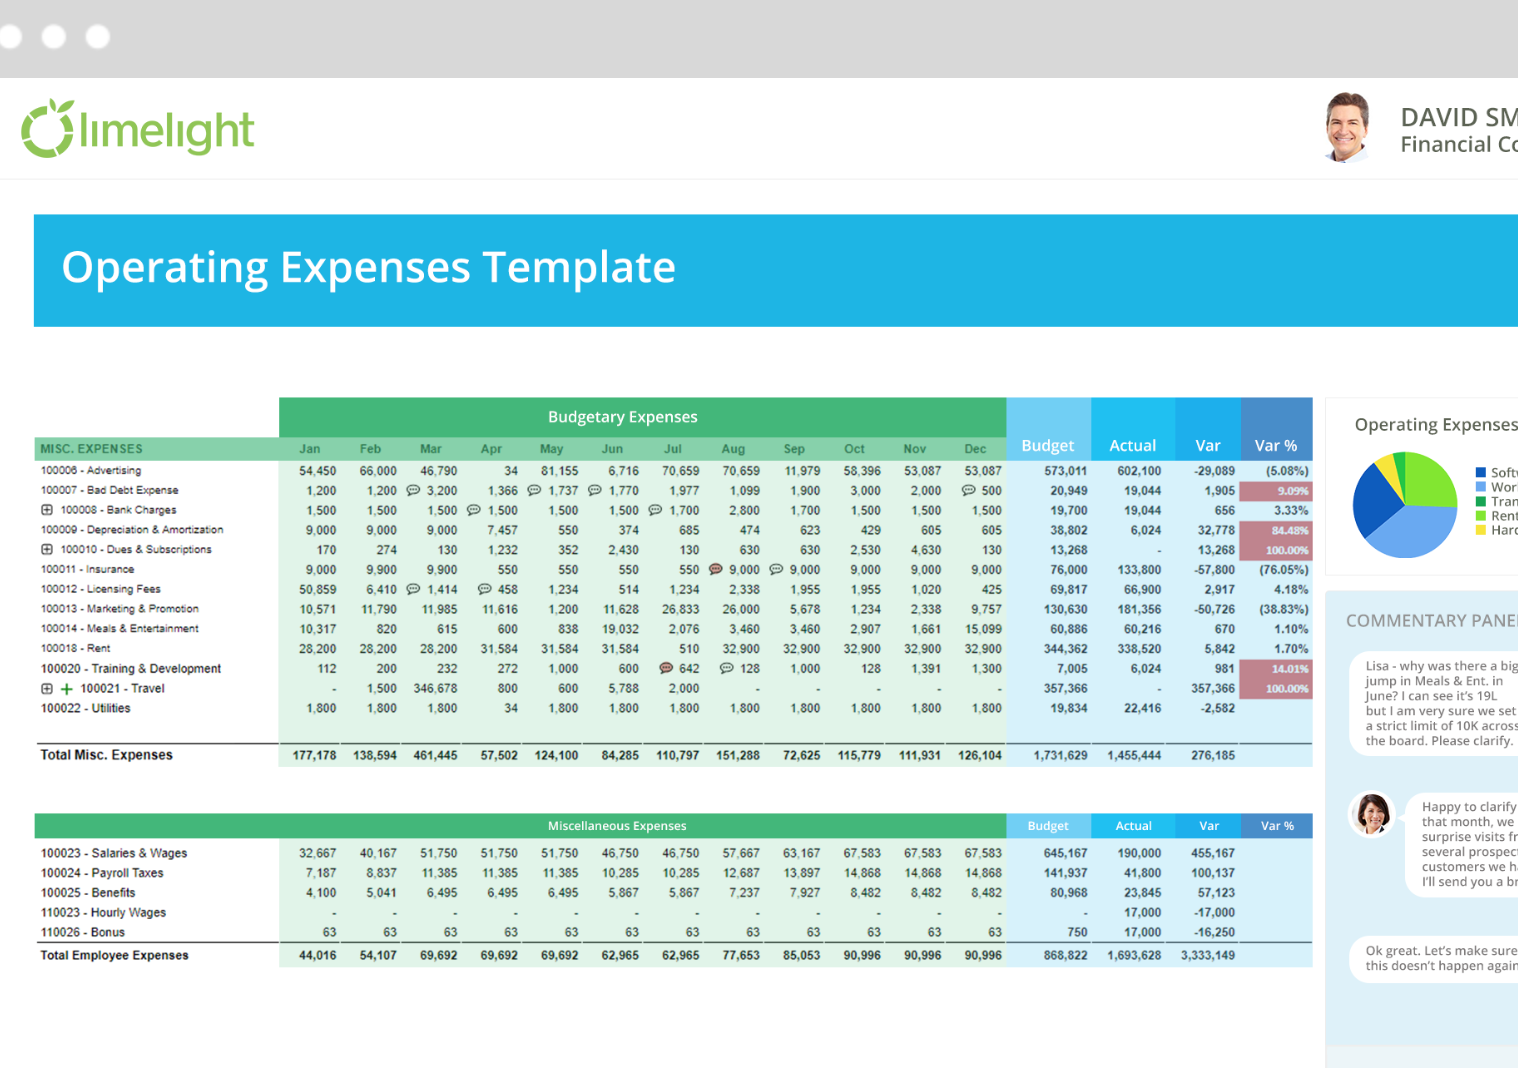 Limelight Operating Expenses